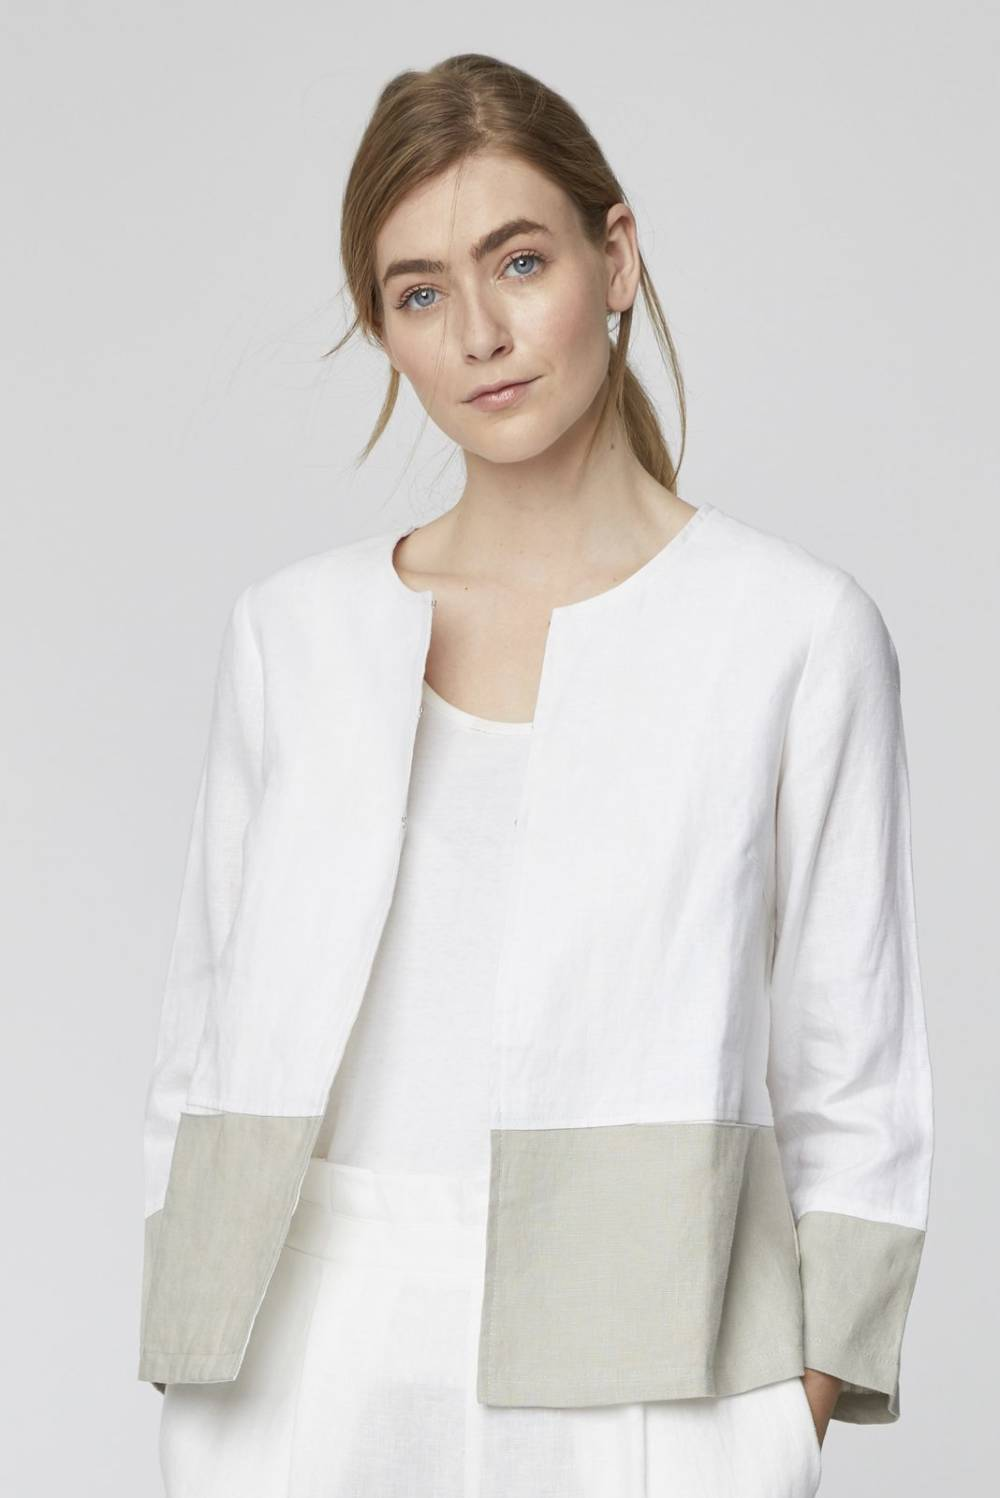 WSJ4188 Rosabel Jacket Thought Clothing Katie Kerr Women's Clothing